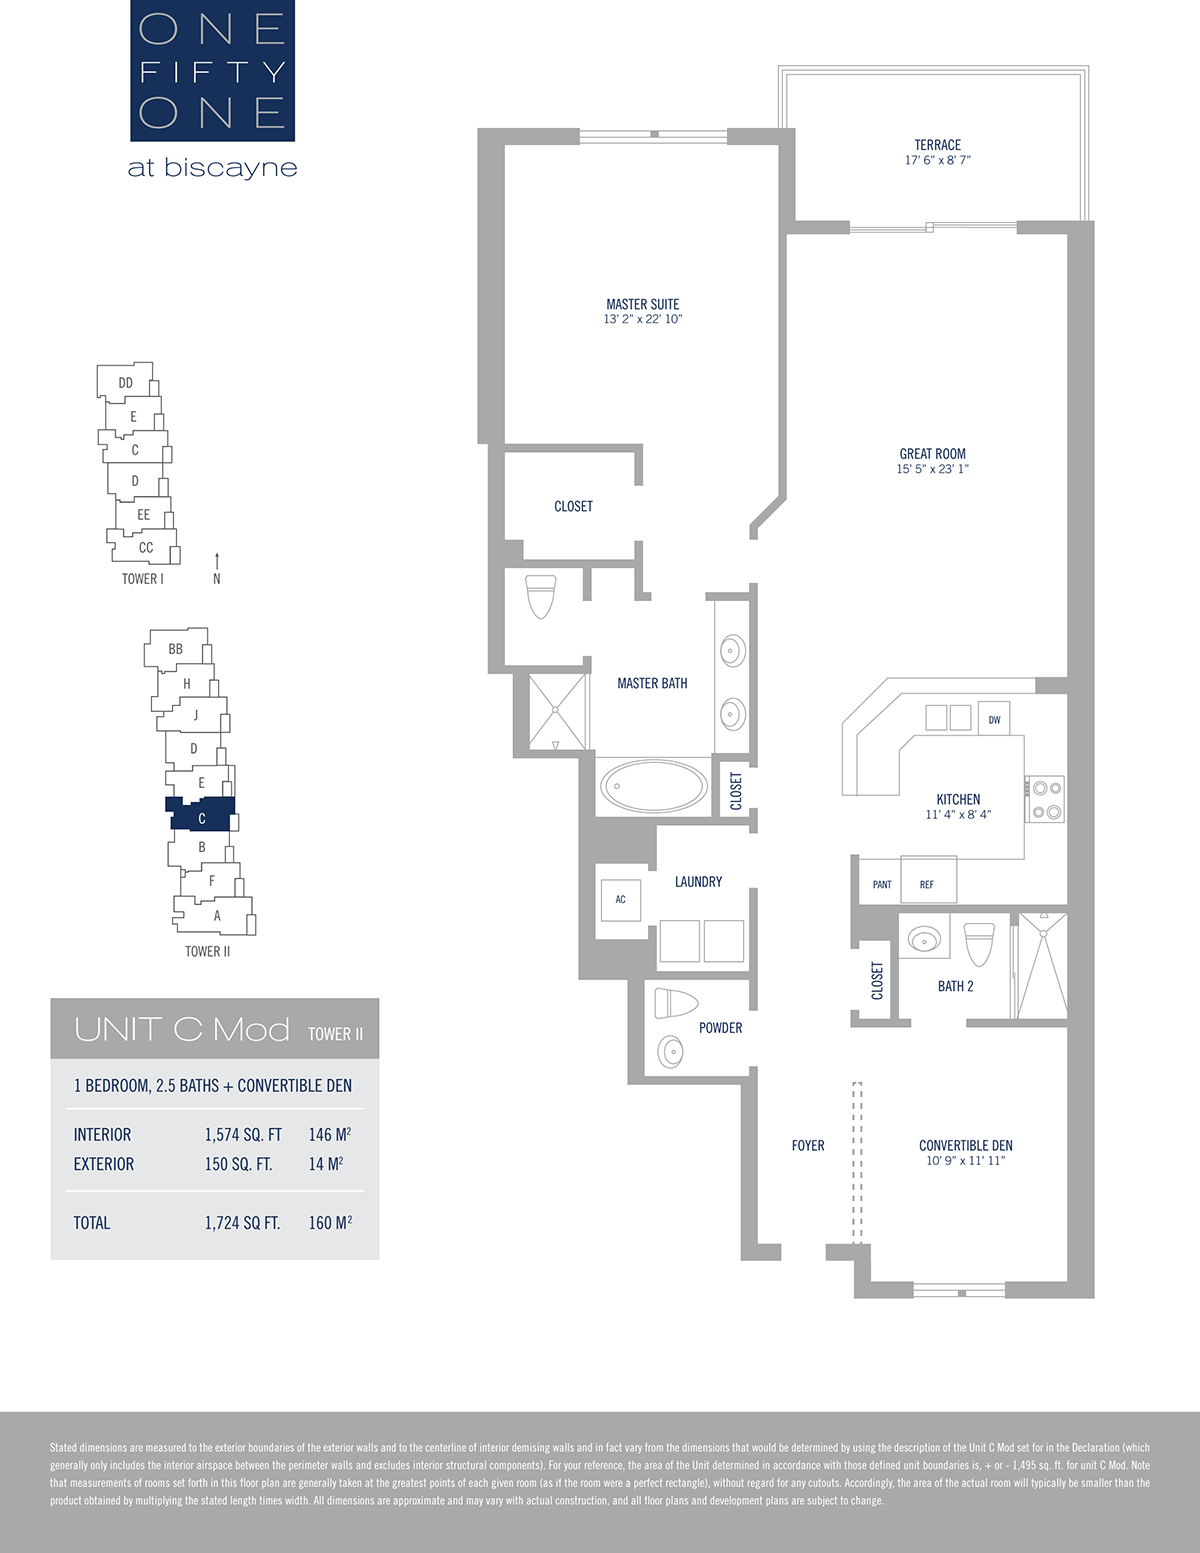 One Fifty One At Biscayne - Floorplan 4